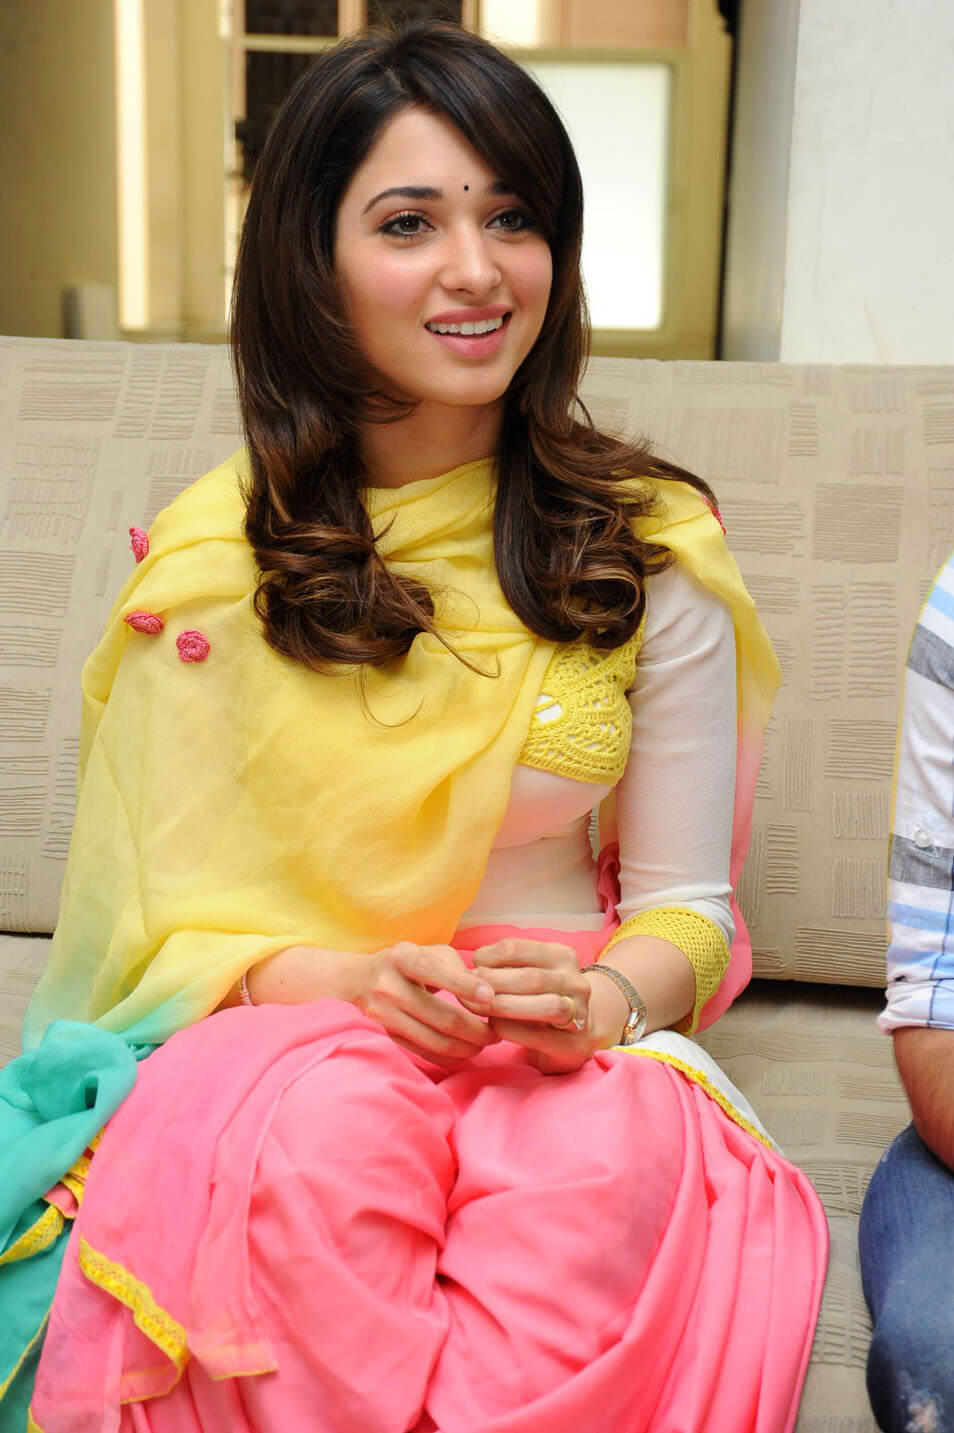 Tamannaah Bhatia Photos(images), Height, Biography, Movies, Date Of Birth, House, Details, Marriage, Boyfriend, Net Worth, Education, Instagram, Facebook, Twitter, Wiki, Imdb, Youtube (22)